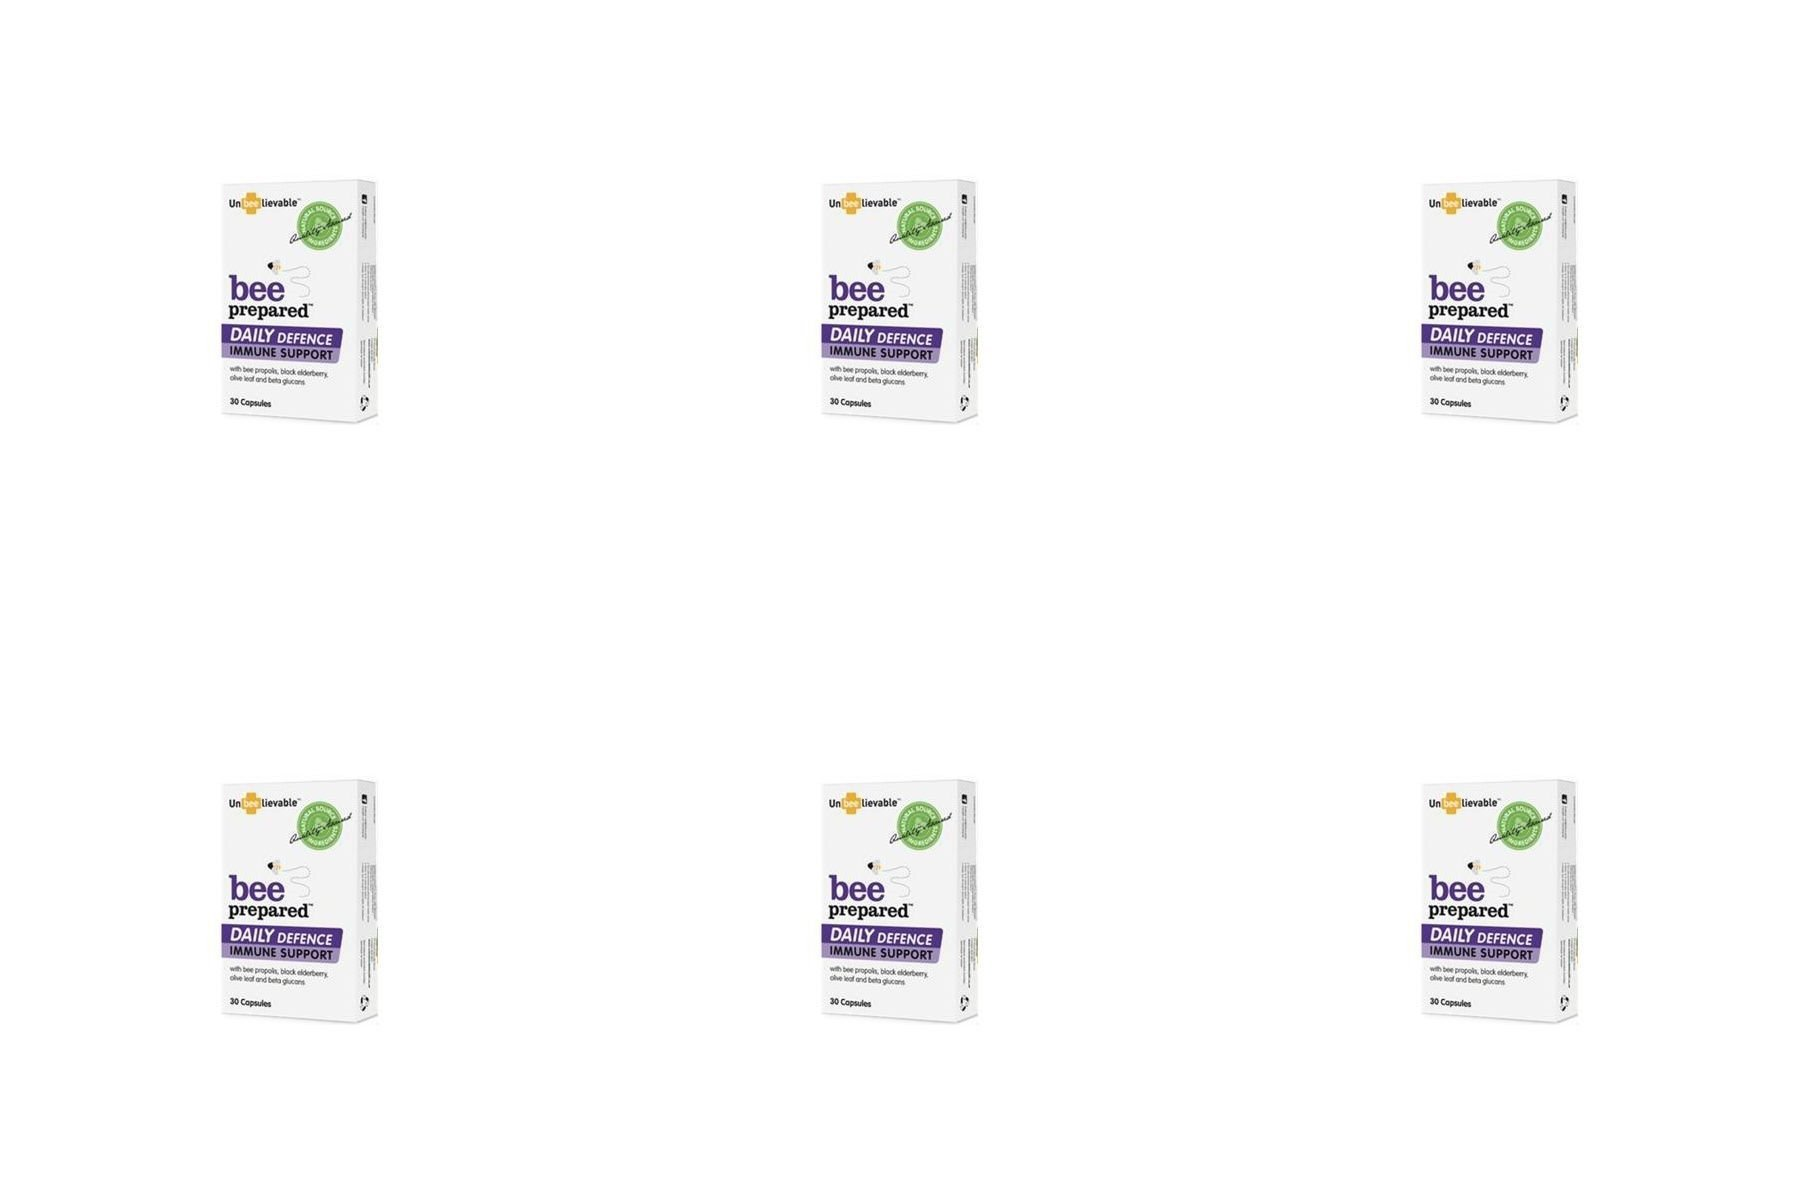 (6 PACK) - Unbeelievable/H Immune Support Daily Defense | 30s | 6 PACK - SUPER SAVER - SAVE MONEY